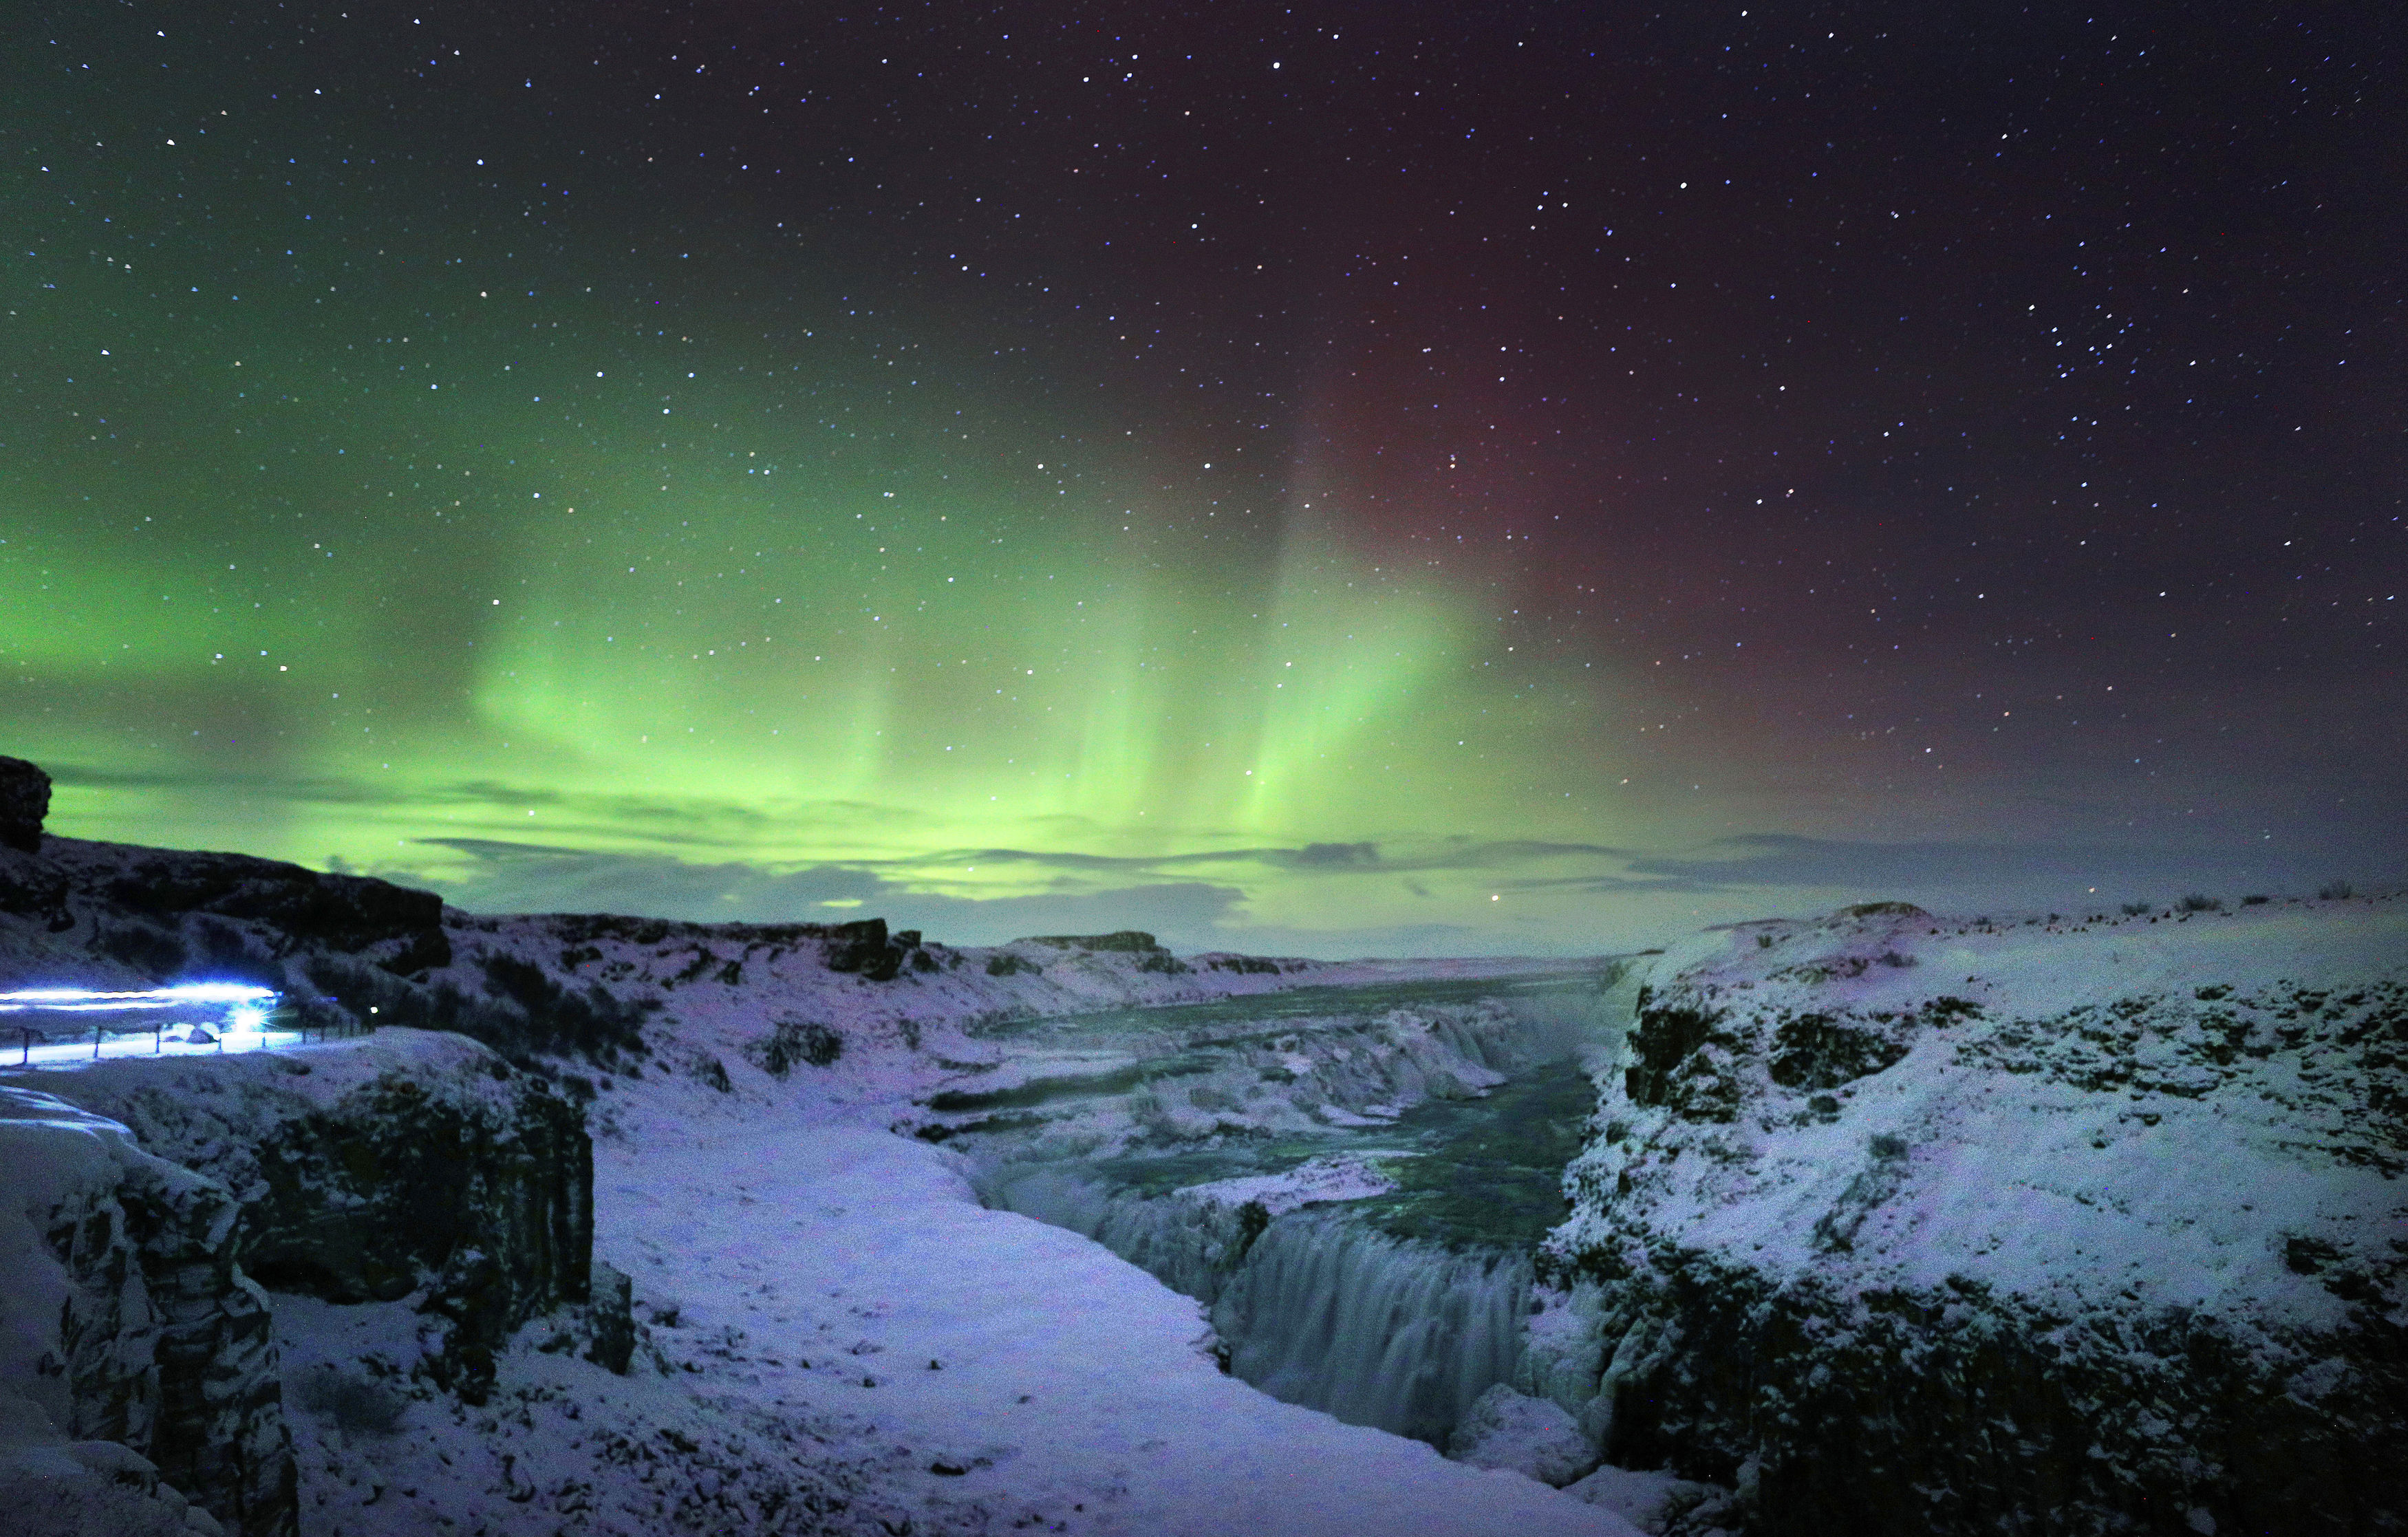 What the sky looks like in Iceland during the Northern Lights. Credit: PA